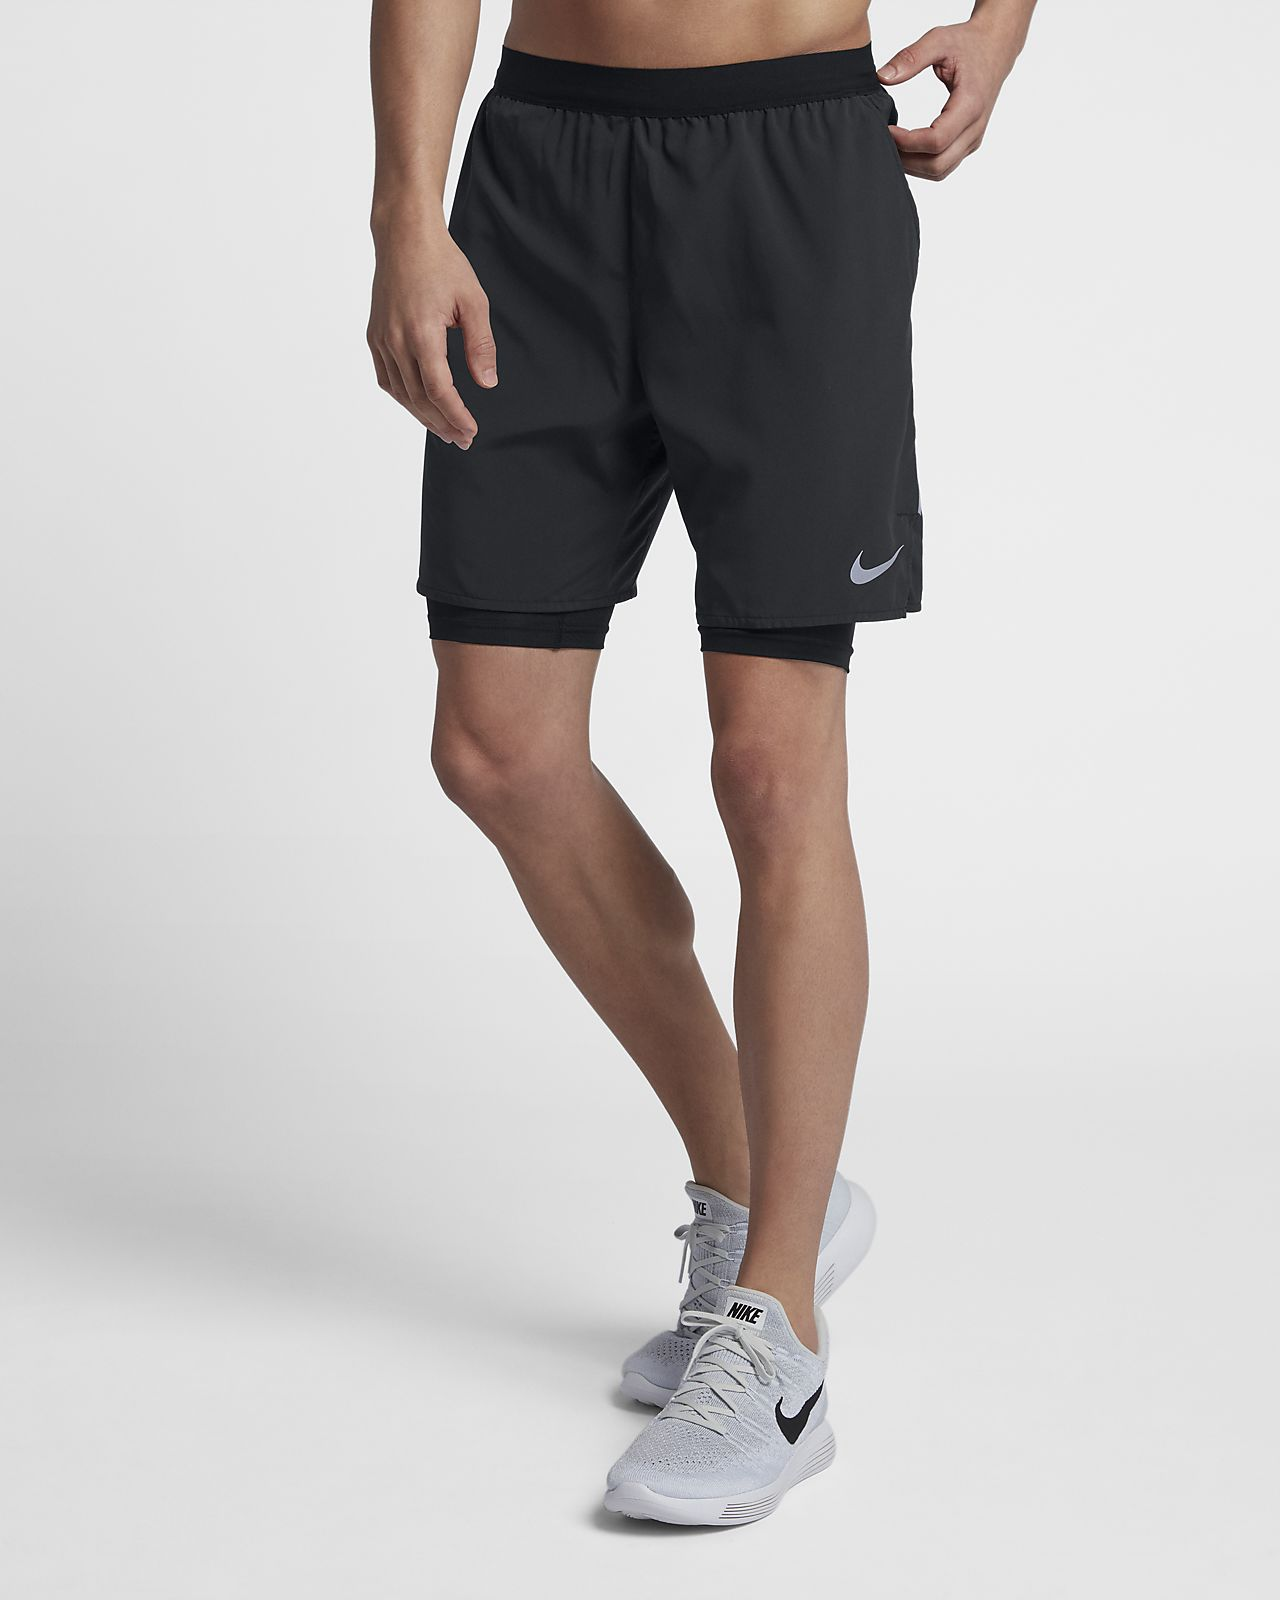 37c3d1f0d8f37 Nike Distance 2-in-1 Men s 7